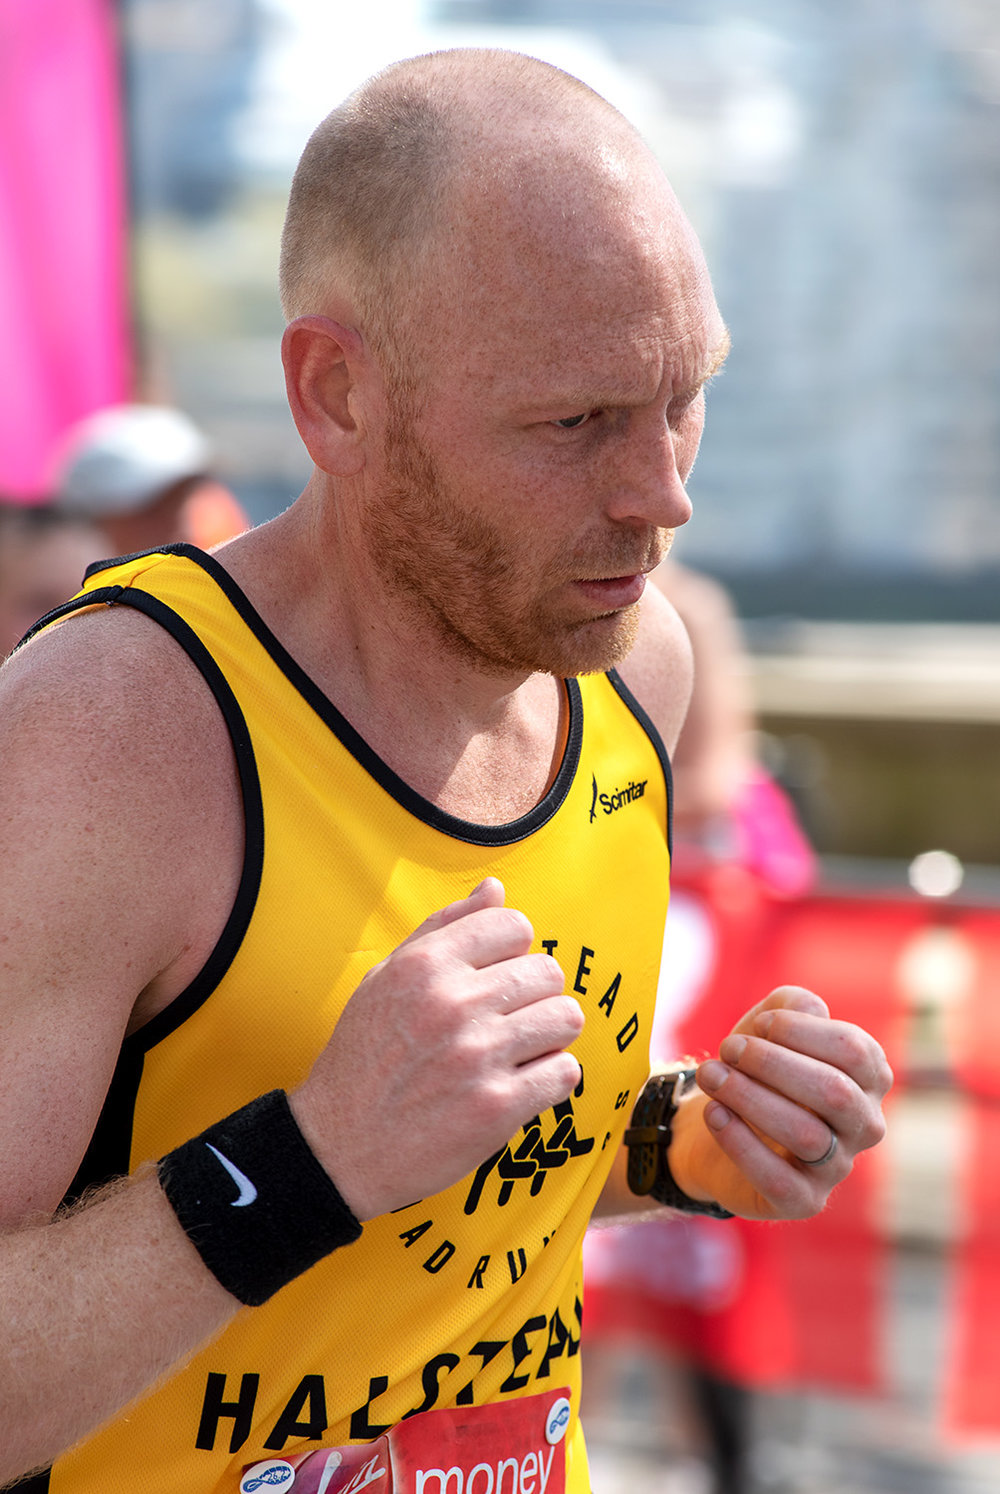 London Marathon 2018 - Mile 24.25